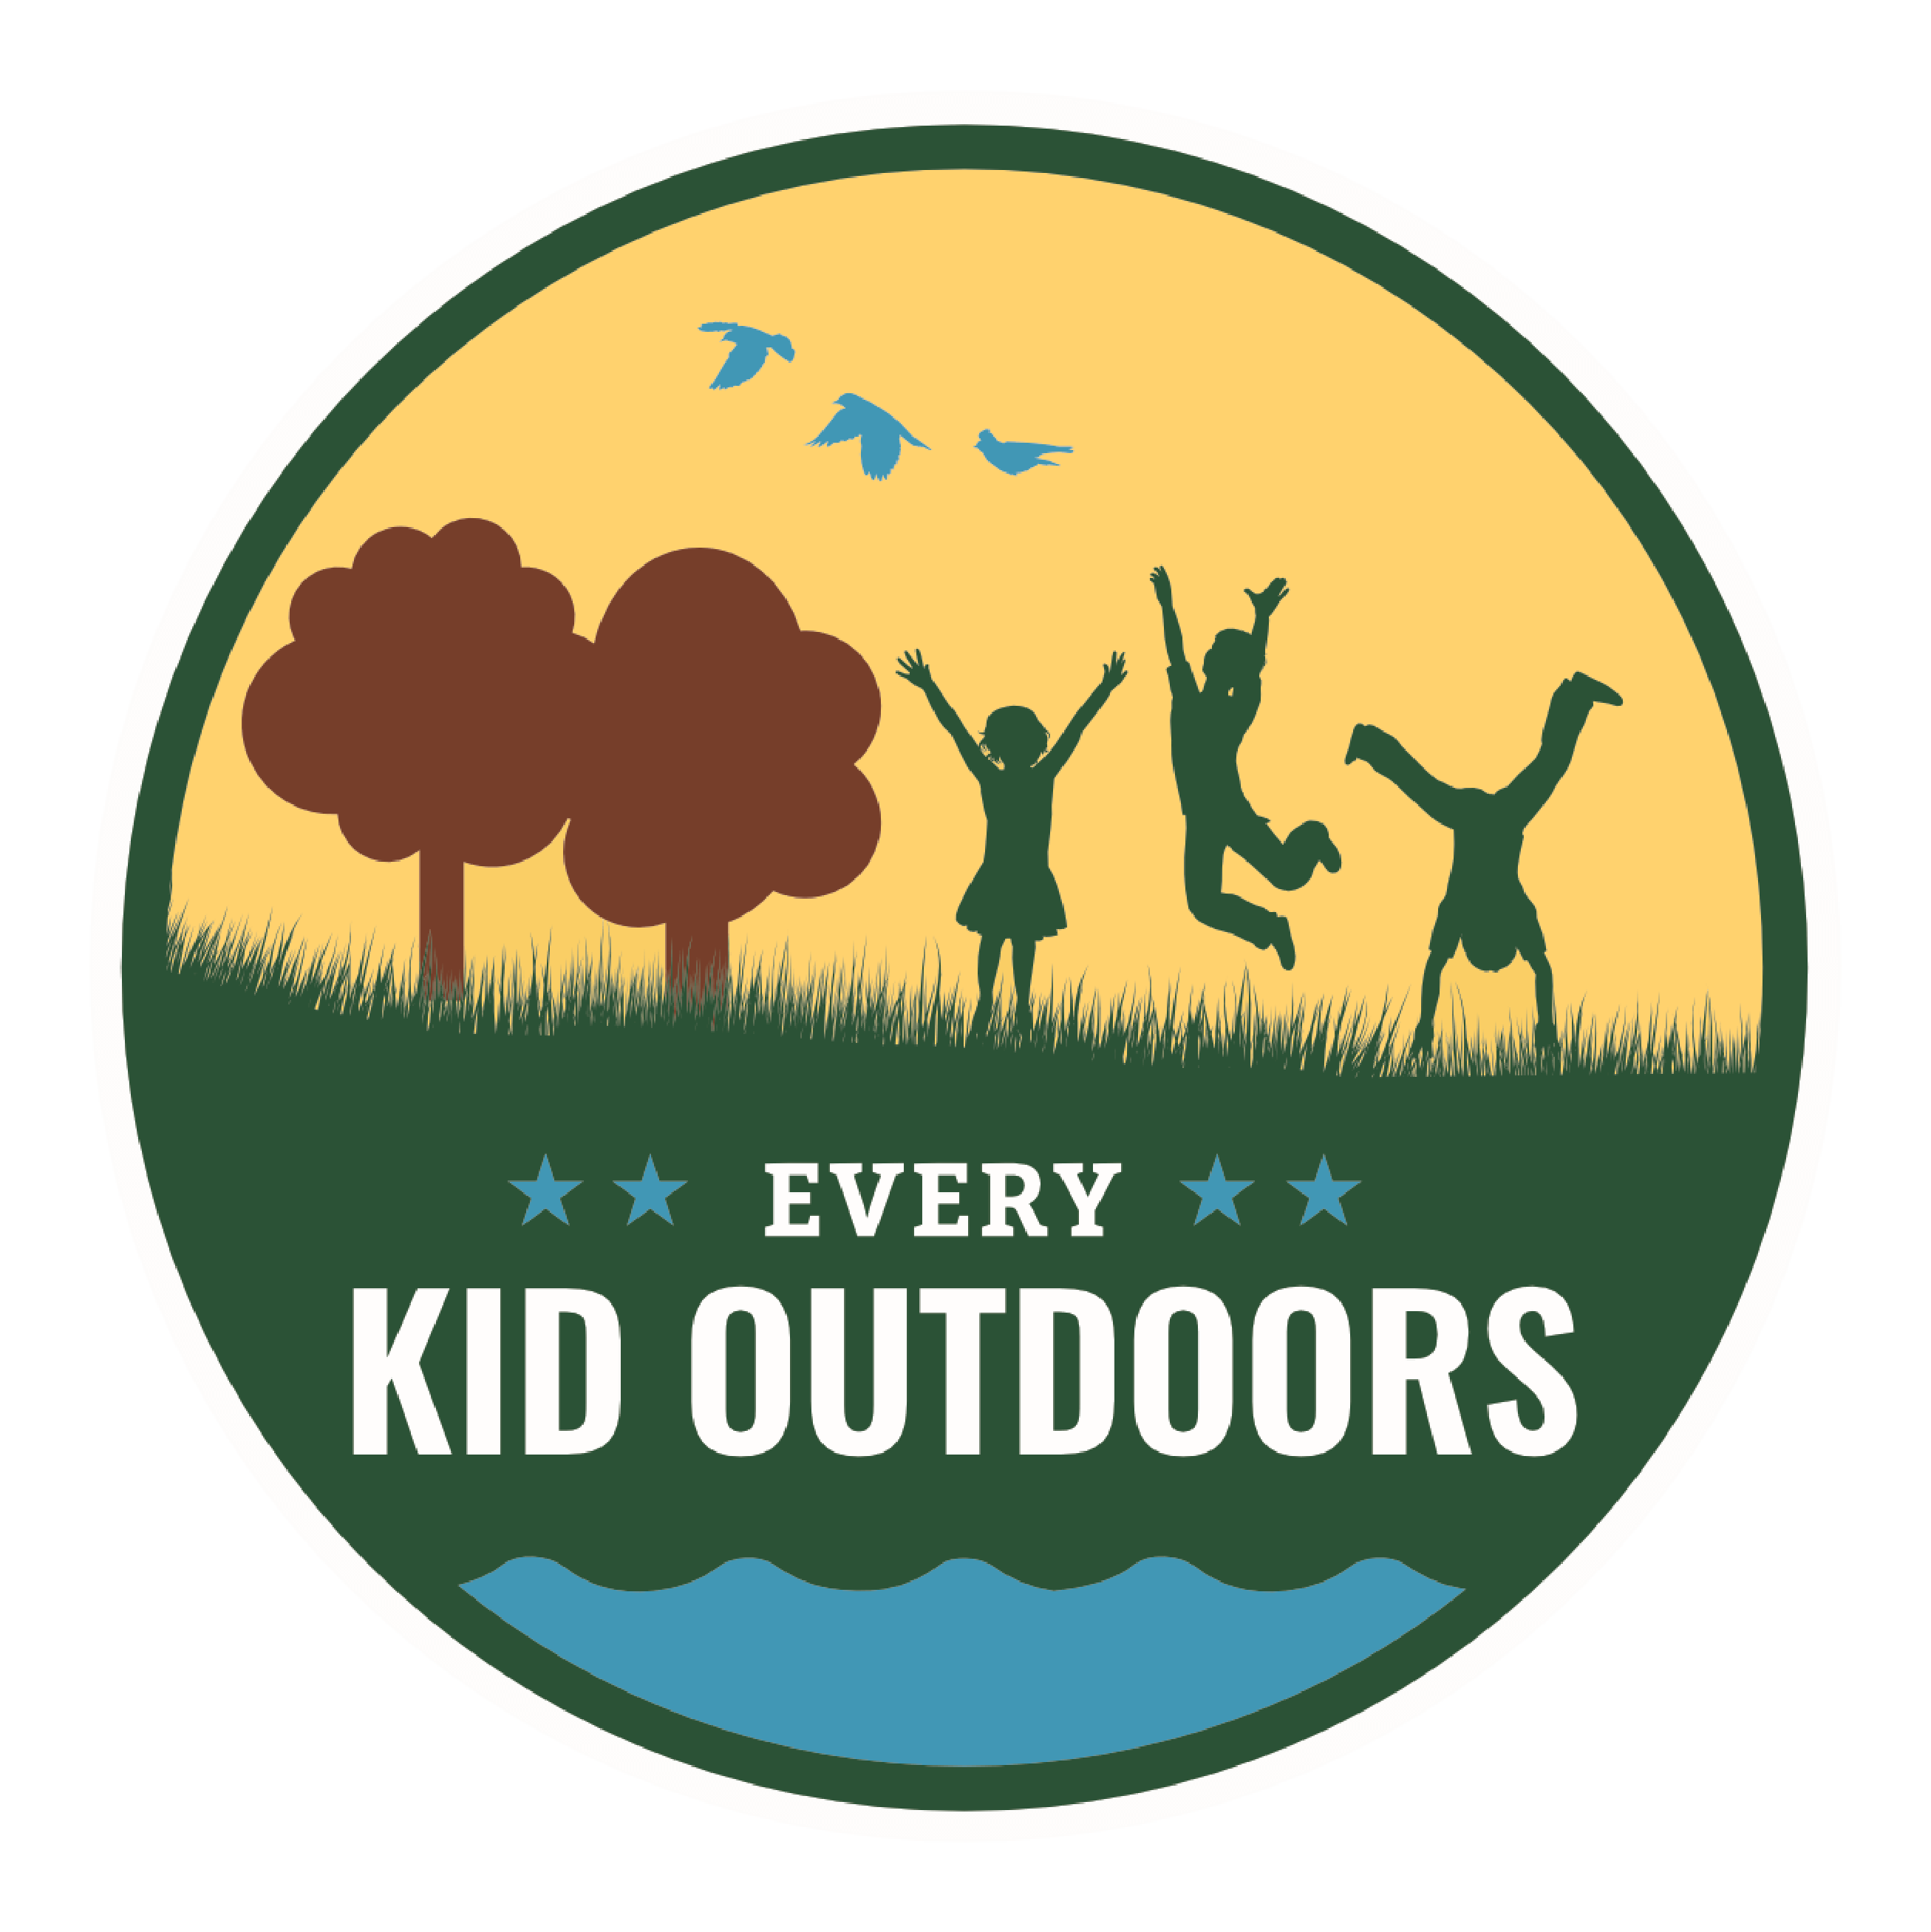 Every kid outdoors logo image with children playing in a field